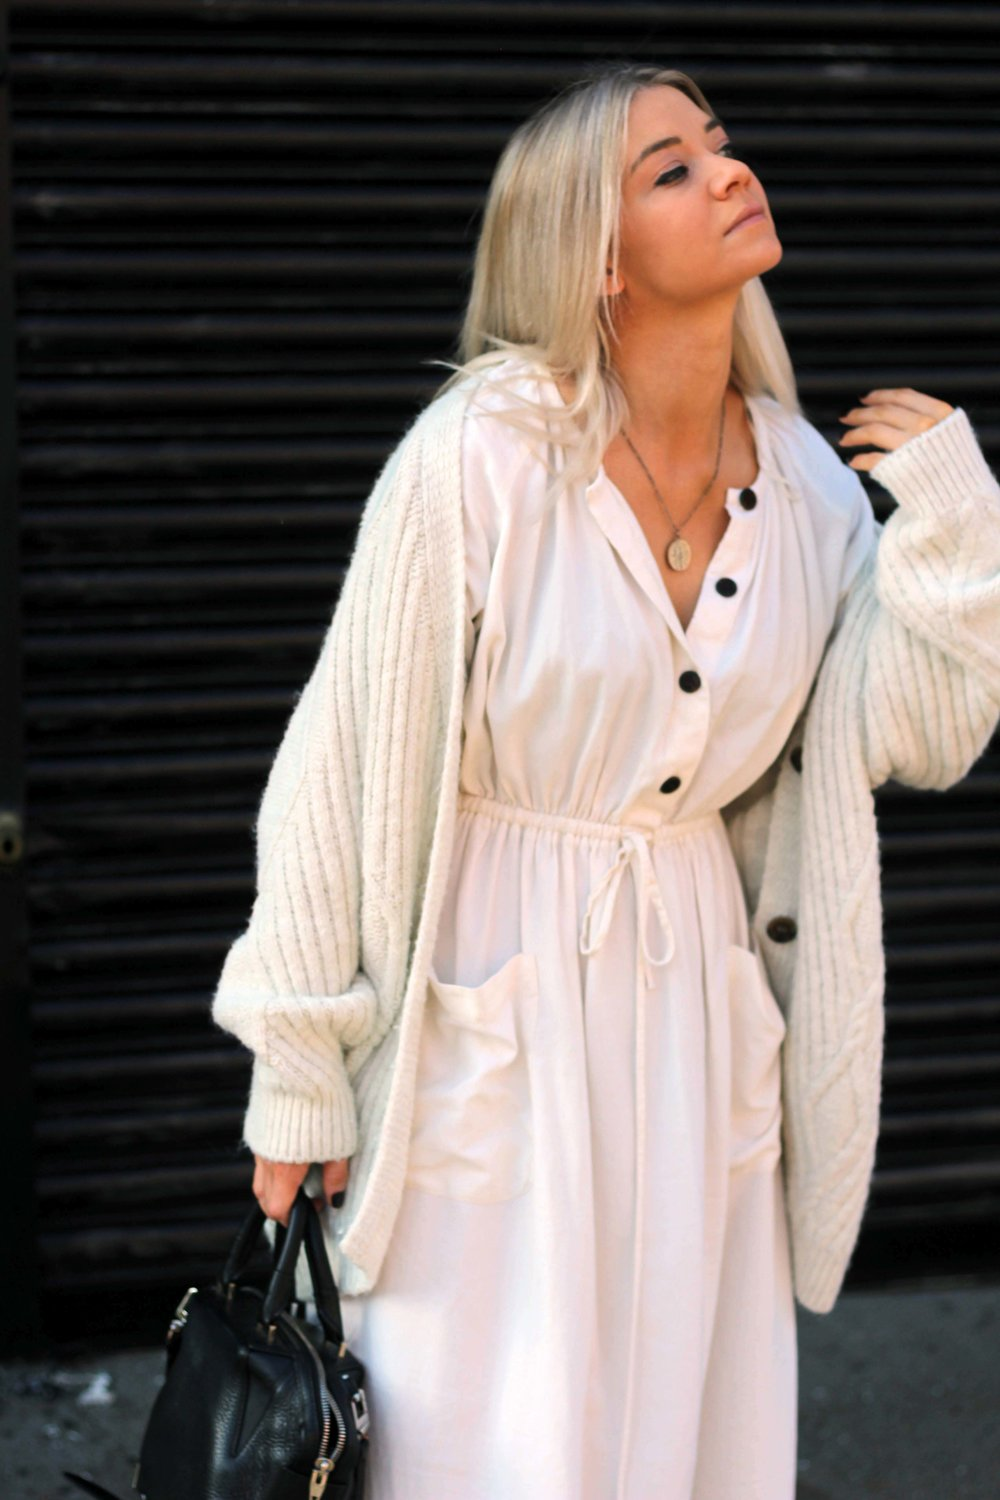 zara linen dress, cream cardigan, superga trainers, northern magpie, joey taylor 2